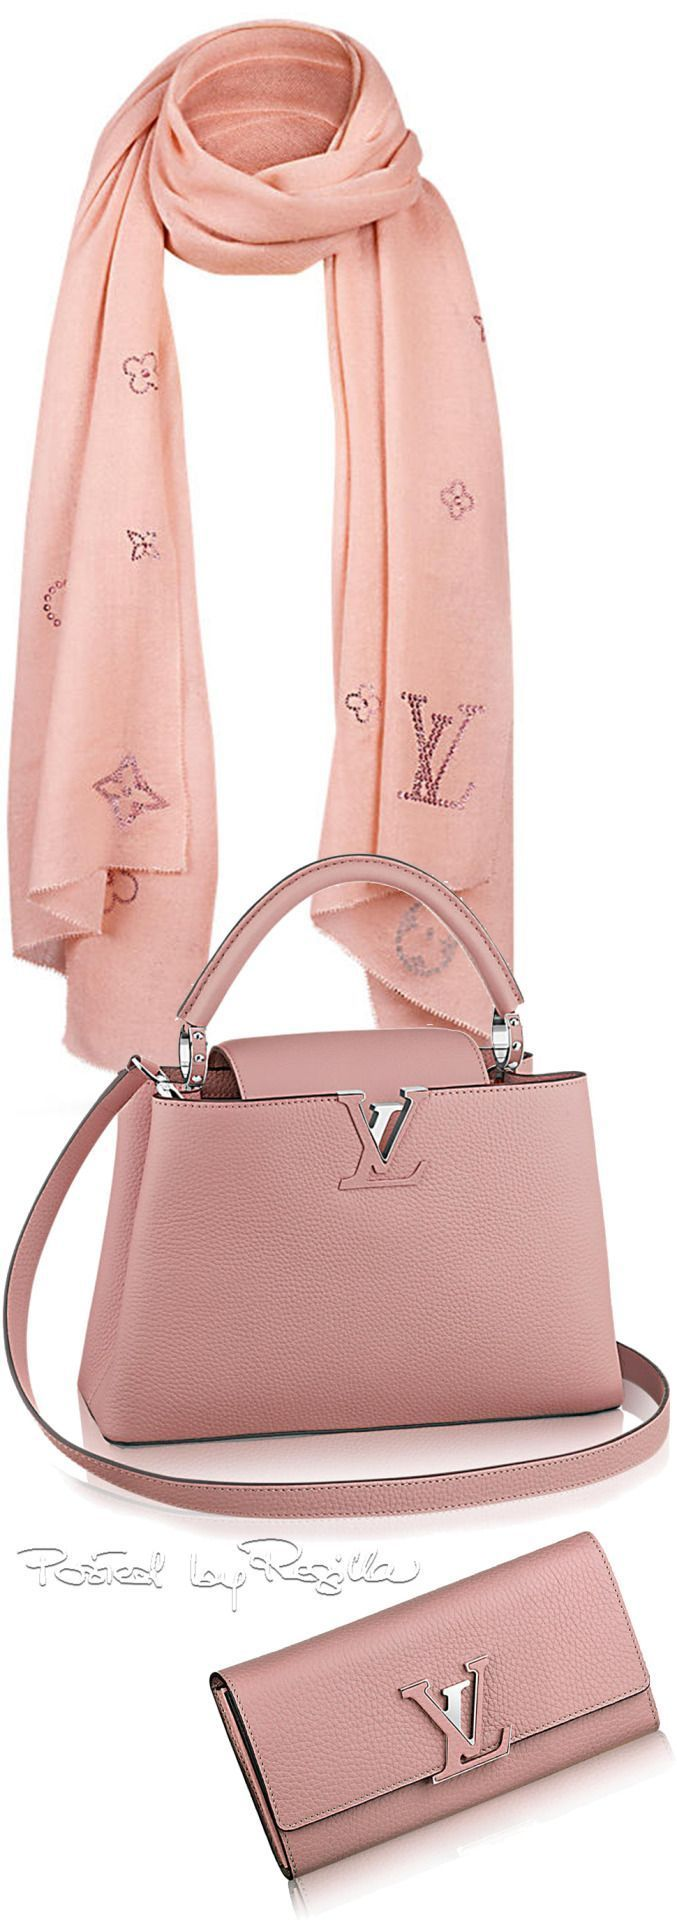 P & D FASHION CONSULTING recommends Styling Loius Vuitton pink # soft # pink # pink # bag # bag # scarf # scarf # cloth # louisvuitton # classic # classic # styles